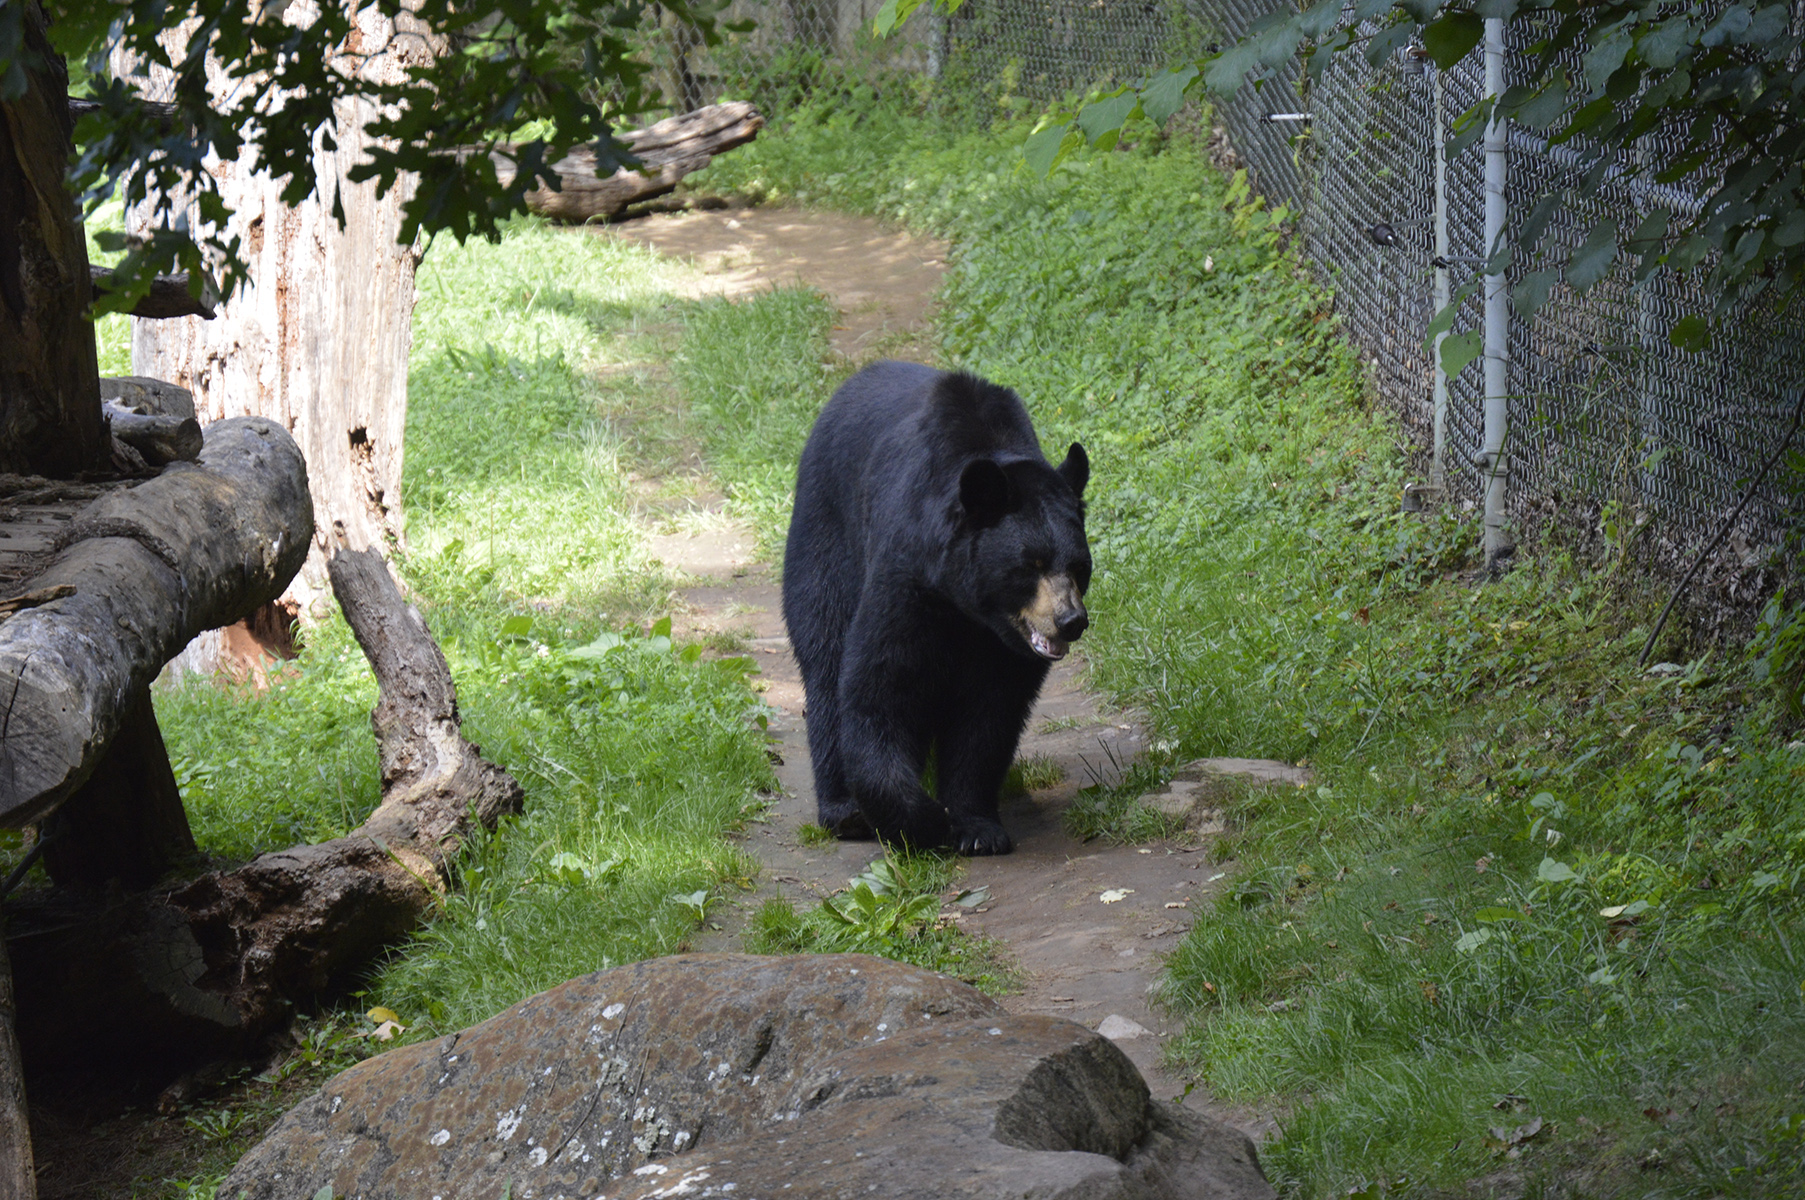 https://wearethe828.com/2021/06/07/brews-and-bears-returns-at-the-wnc-nature-center/